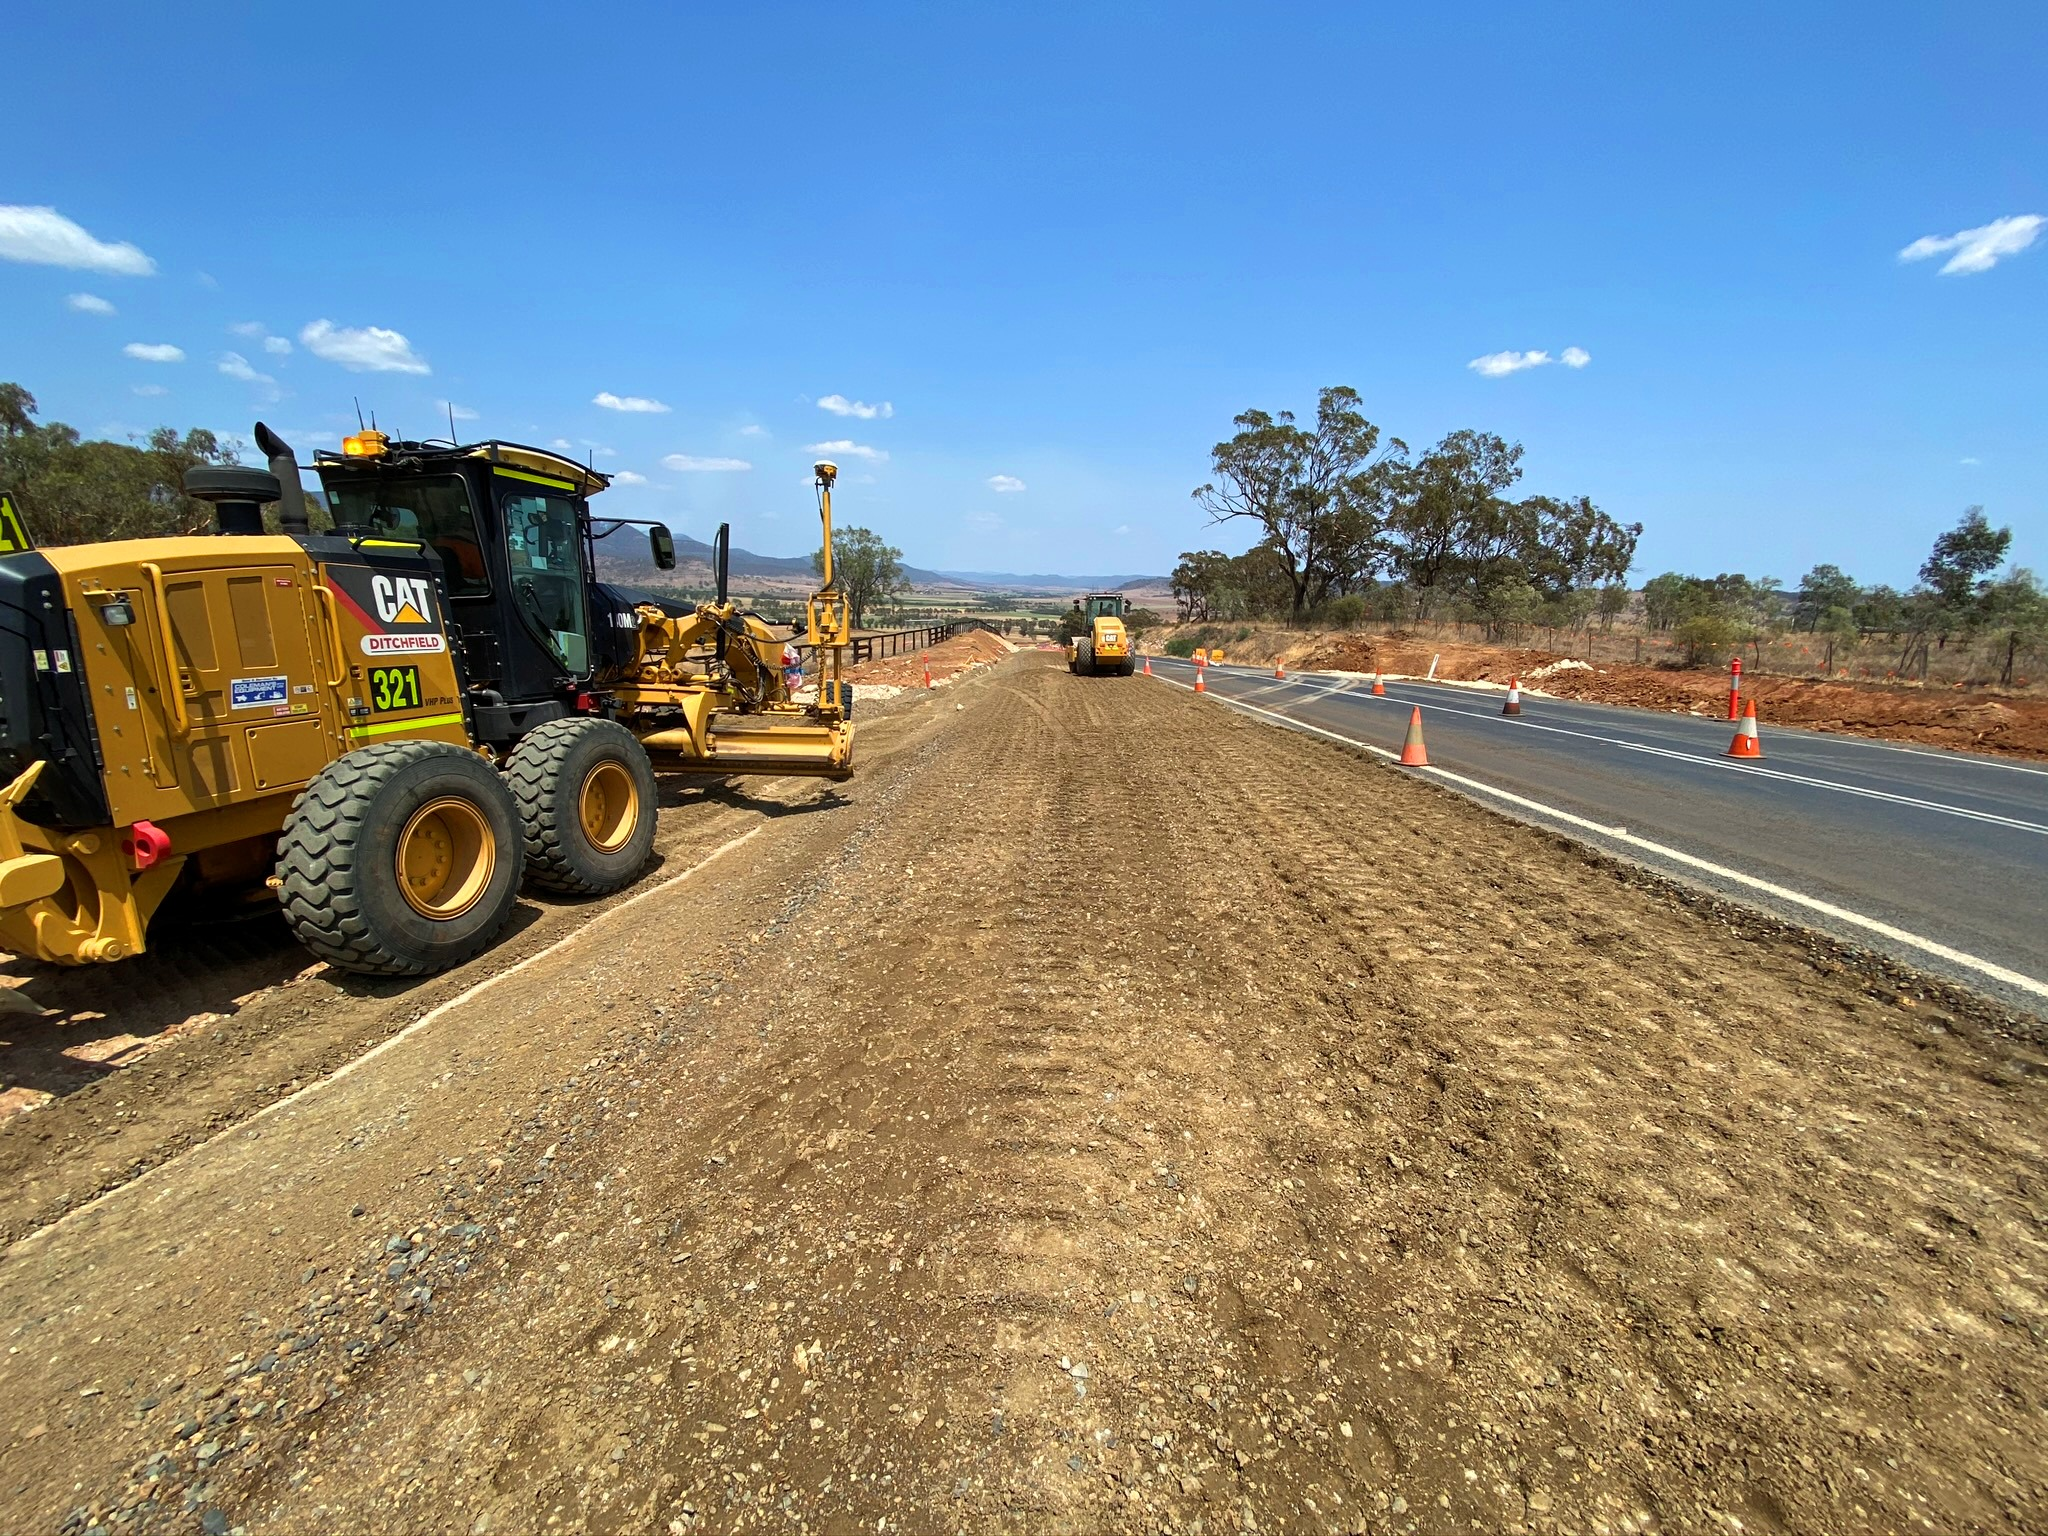 Infrastructure - Golden Highway - Grader